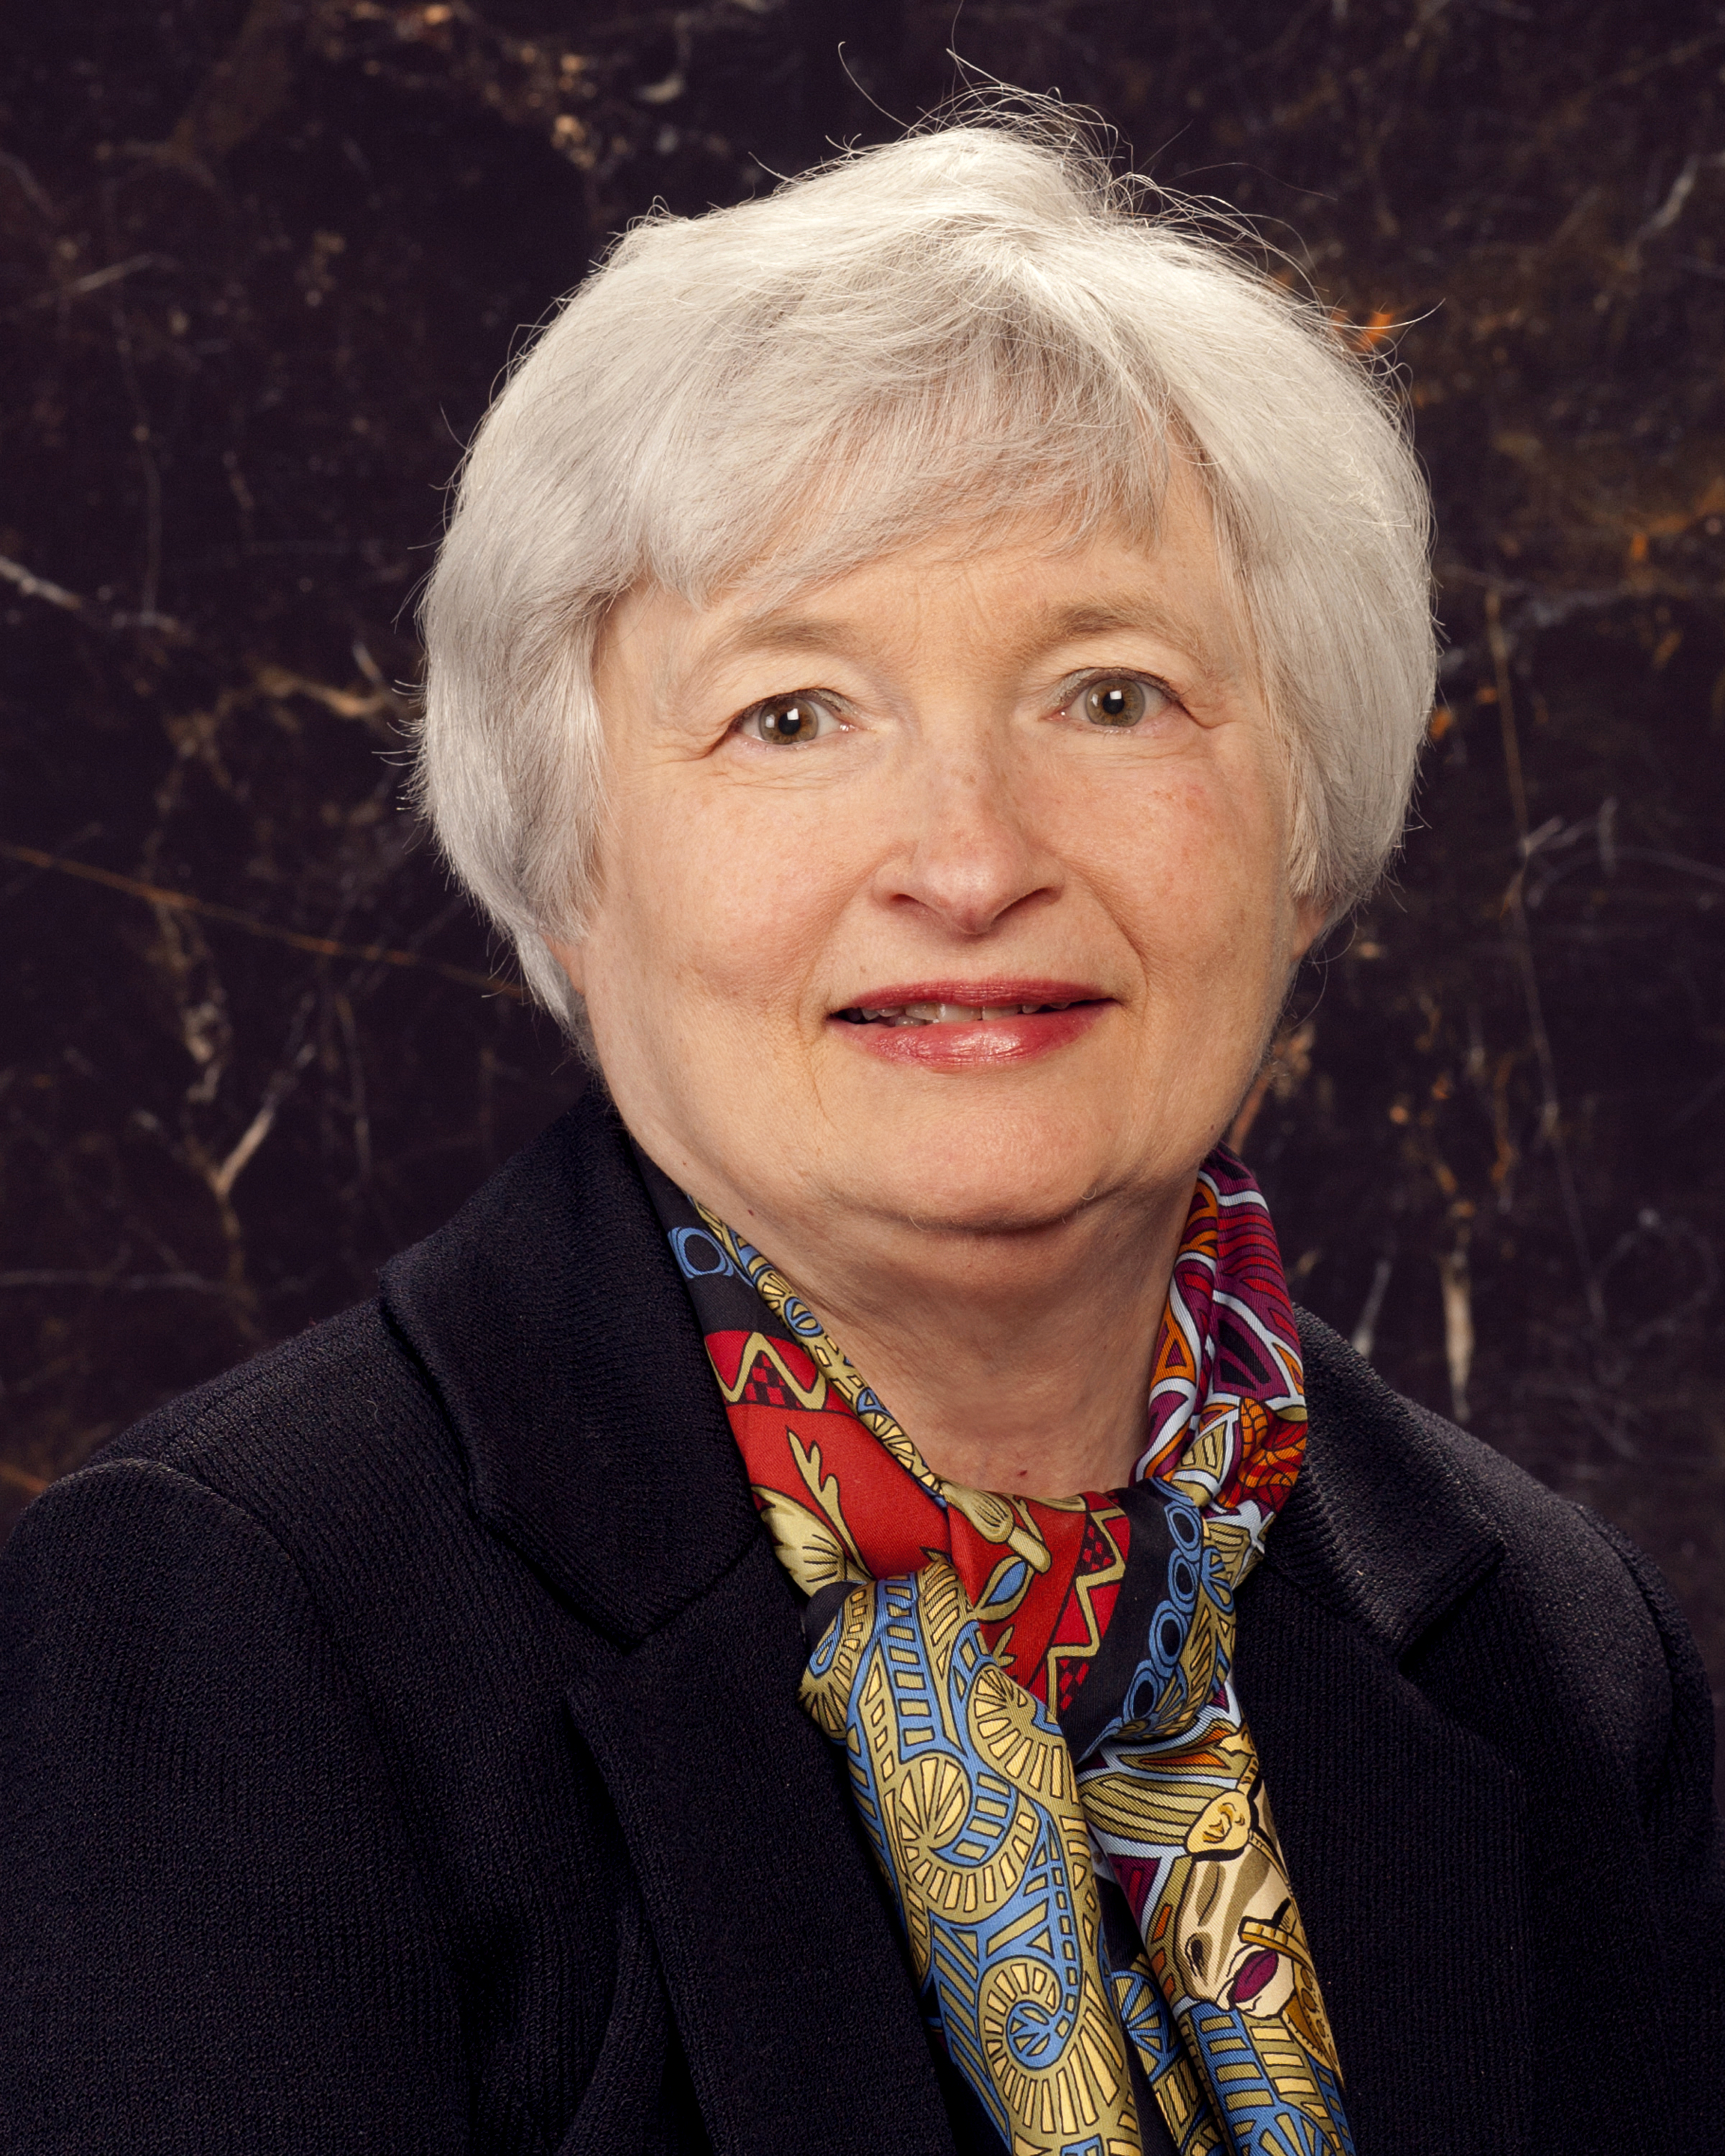 Janet Yellen official portrait